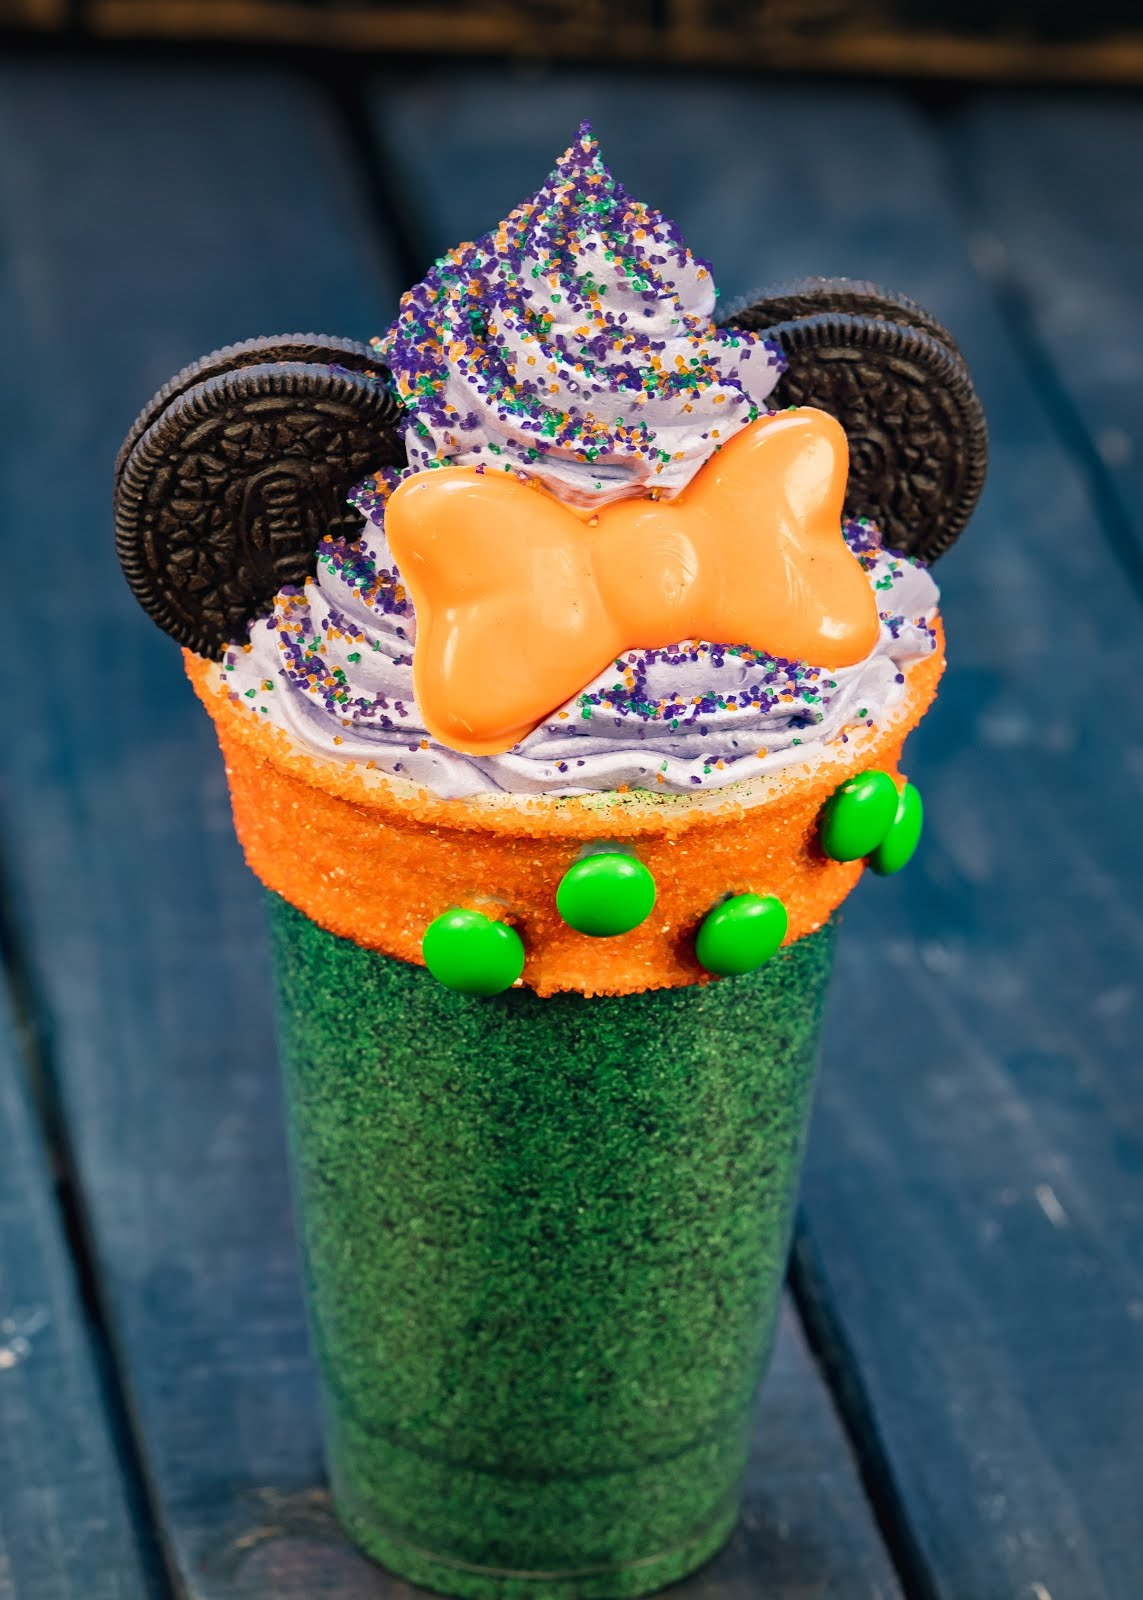 Spooky Treats and Frightfully Festive Foods During Halloween Time at Disneyland